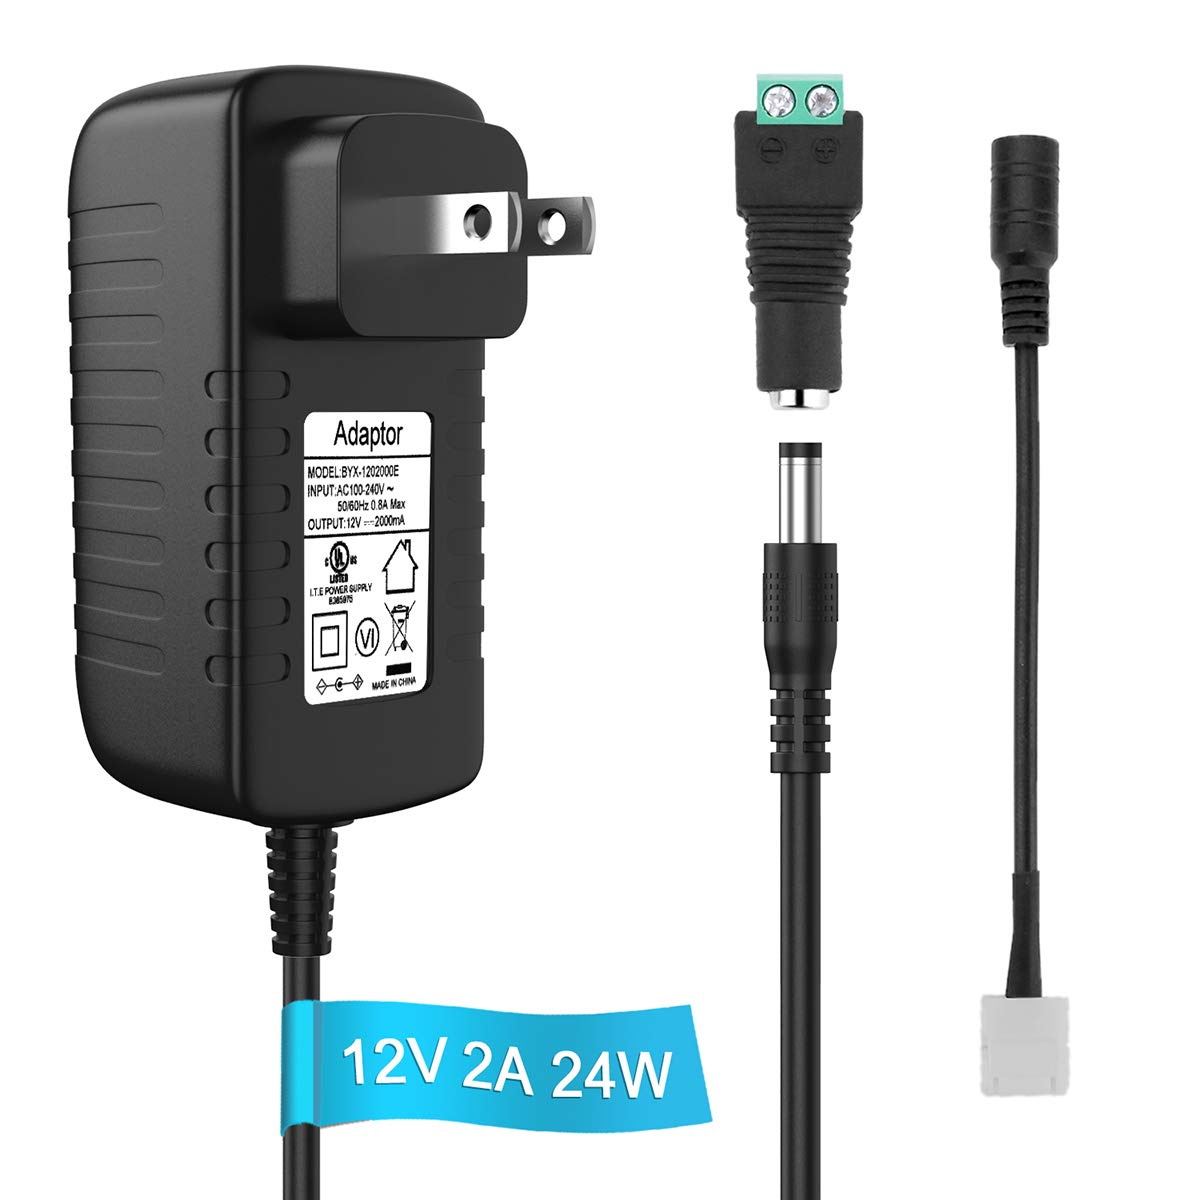 12V 2A Power Supply AC To DC Adapter Plug Converter Charger fit CCTV Camera 93cm